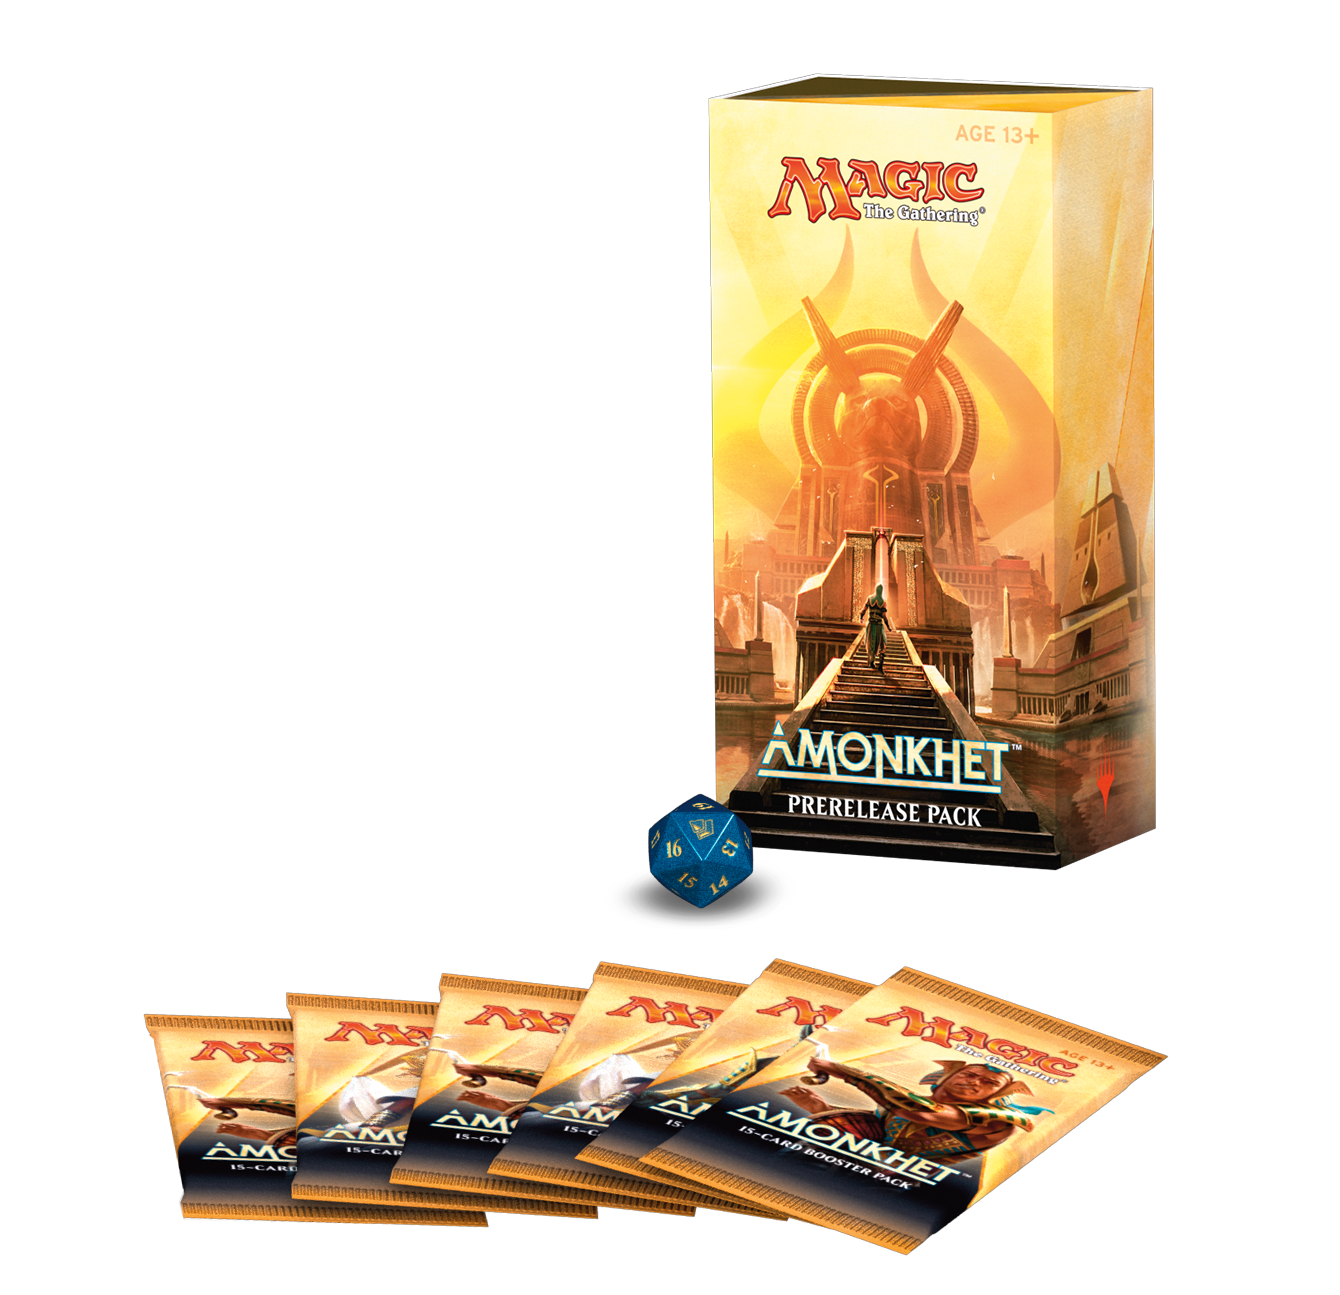 Amonkhet prerelease kit